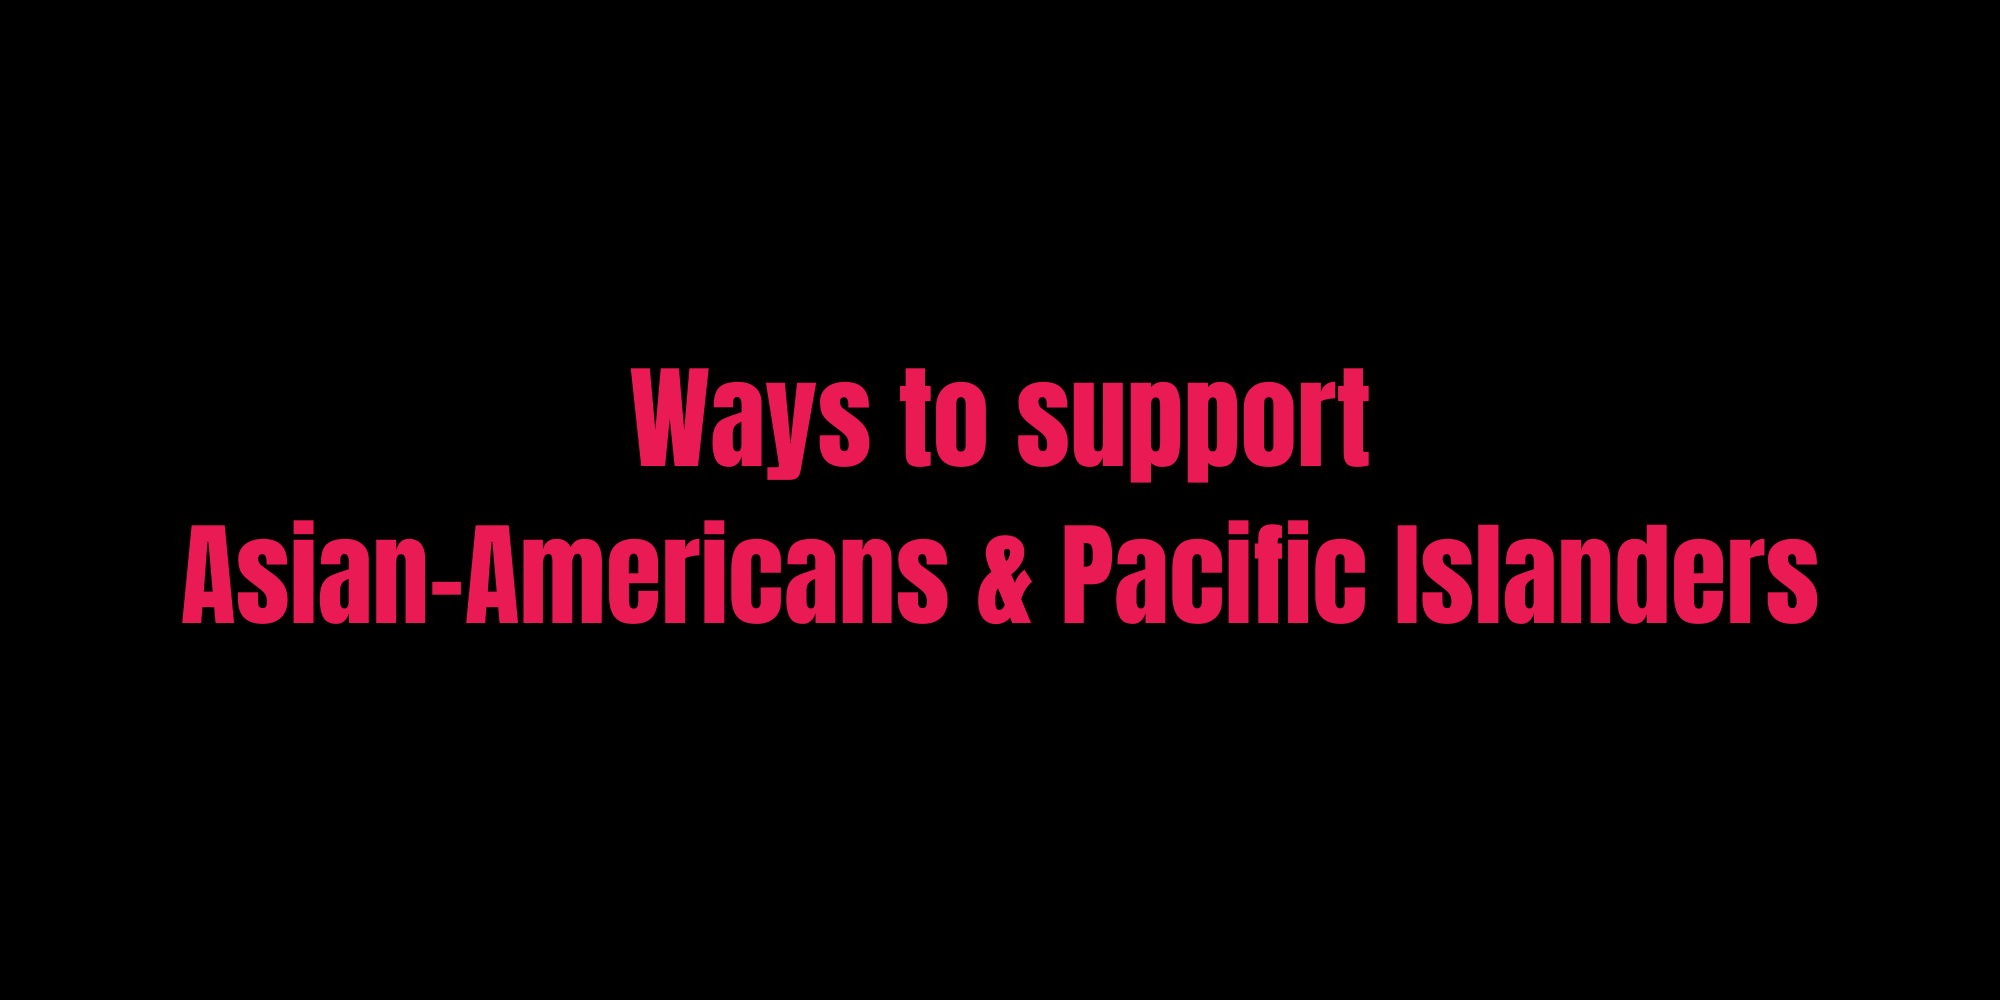 Ways to support Asian-Americans & Pacific Islanders